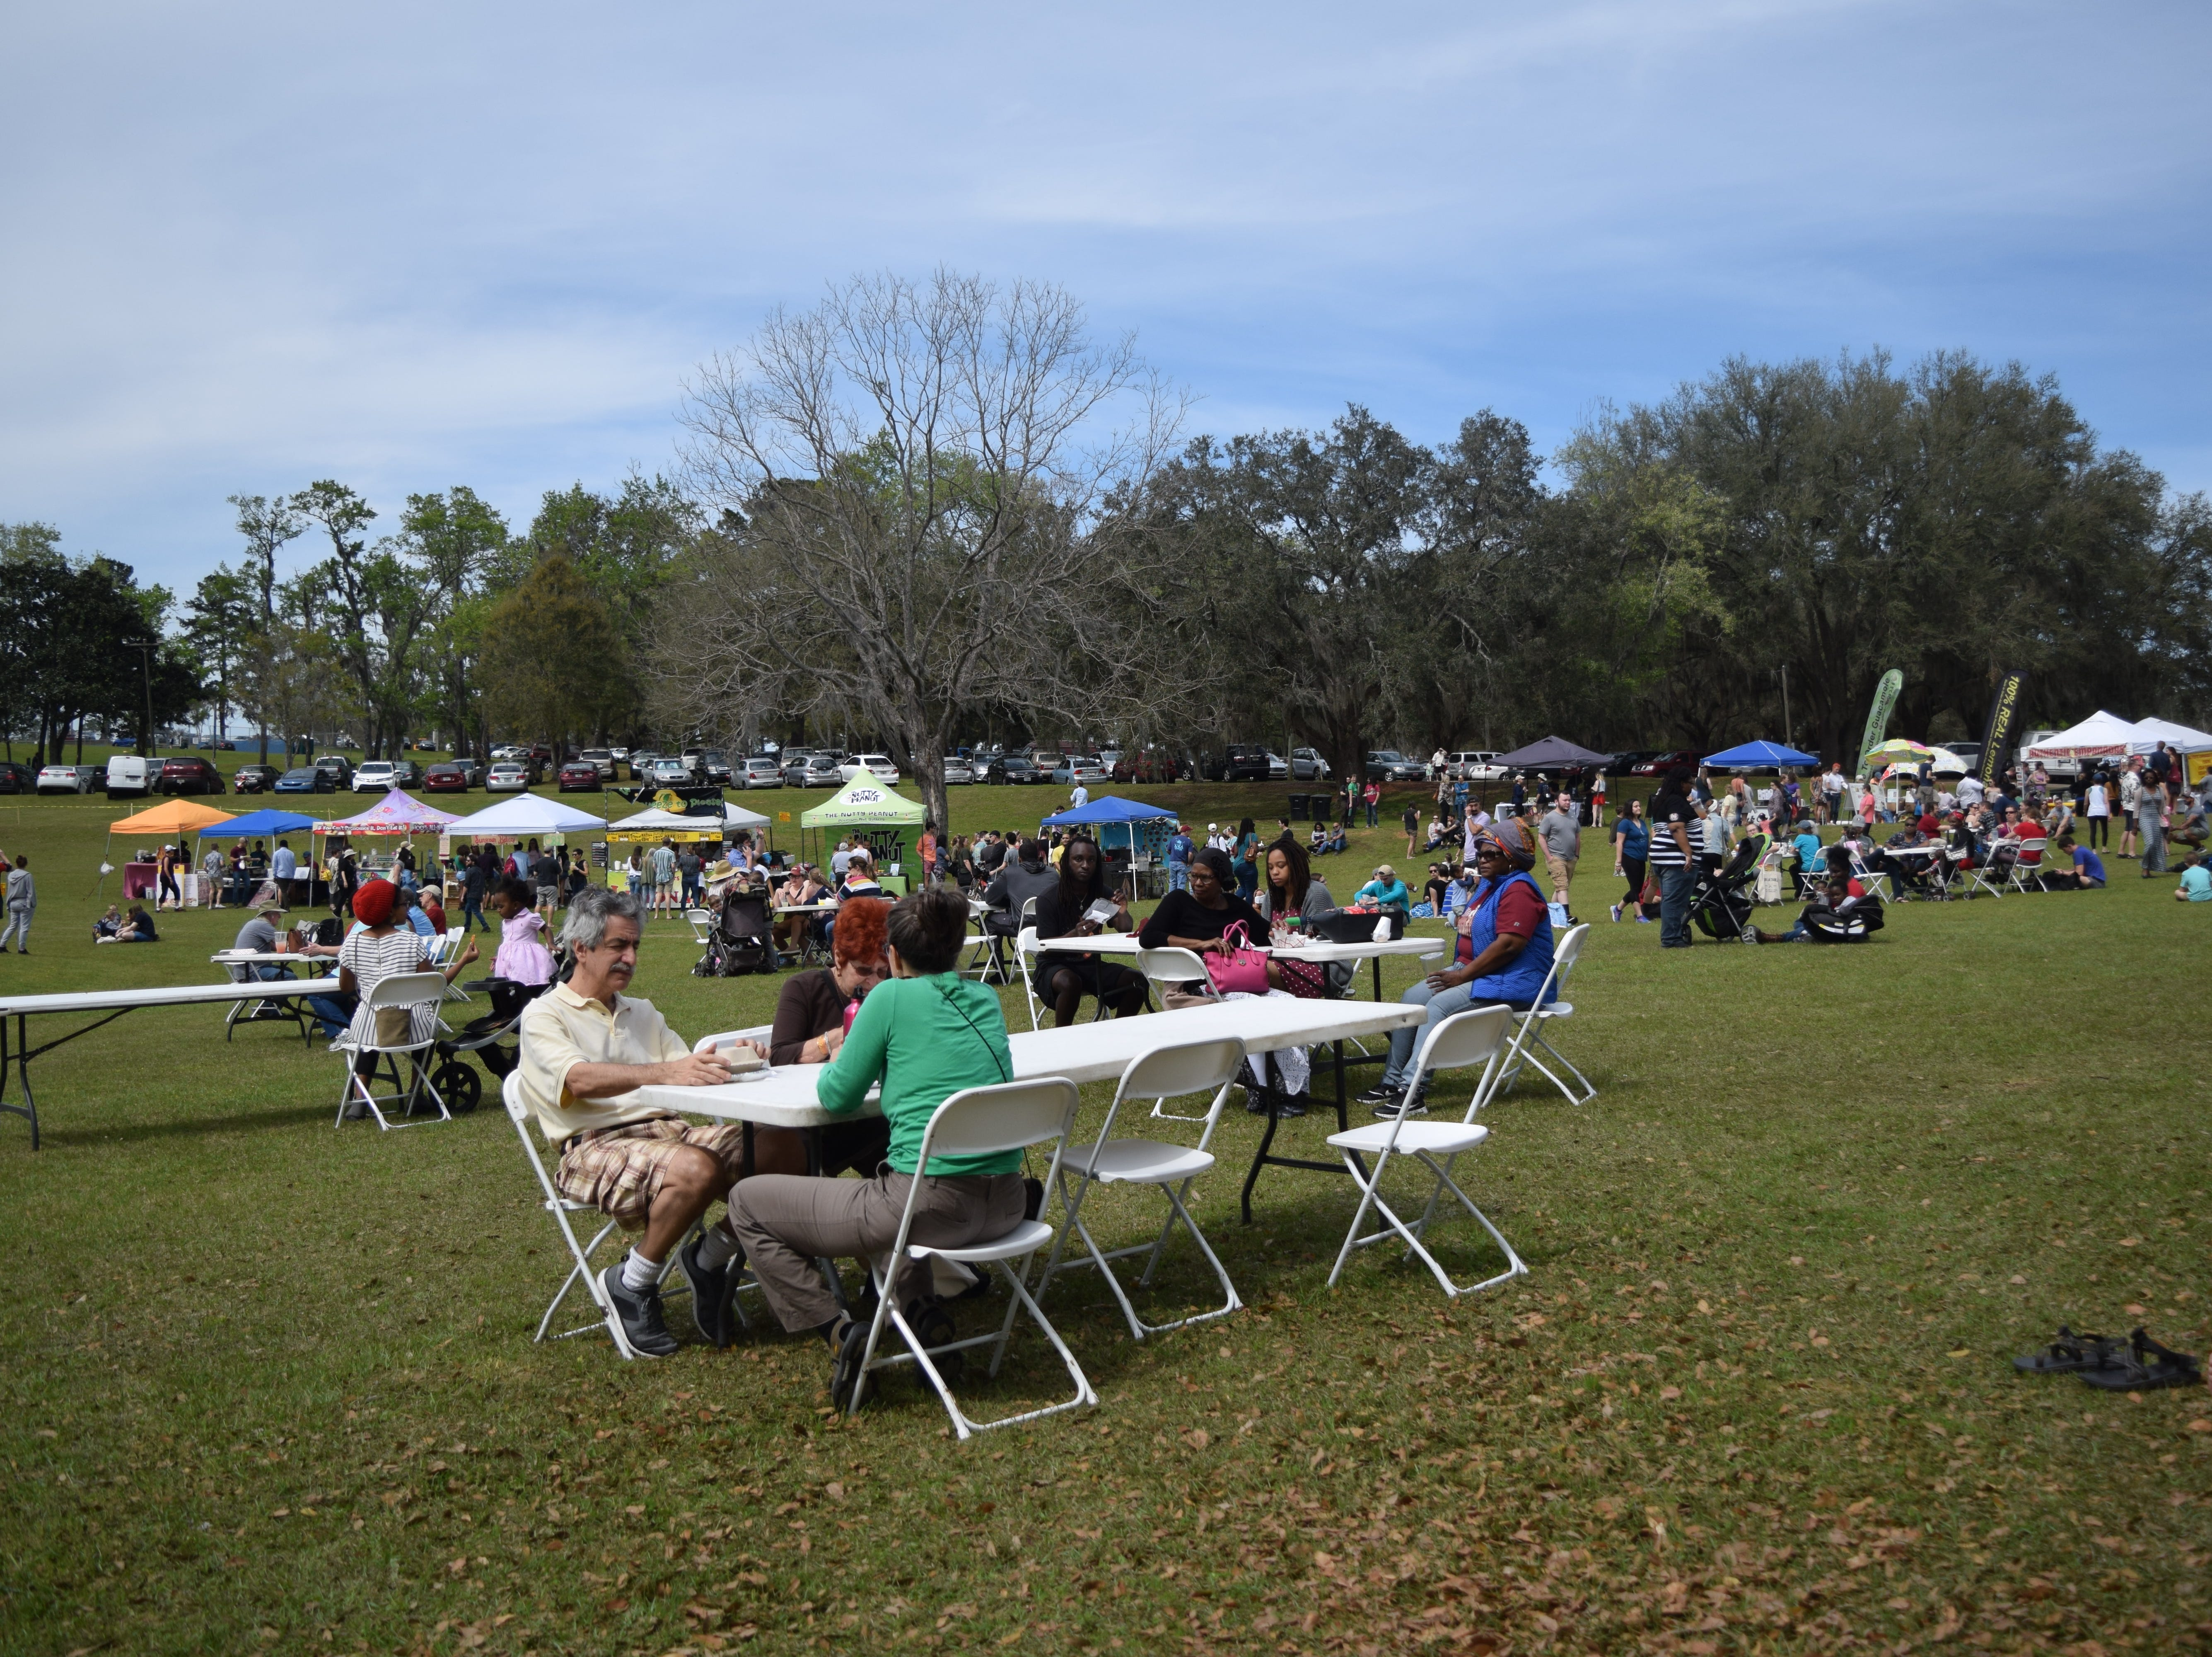 Attendees of the 5th annual North Florida VegFest eat vegeterian and vegan meals.